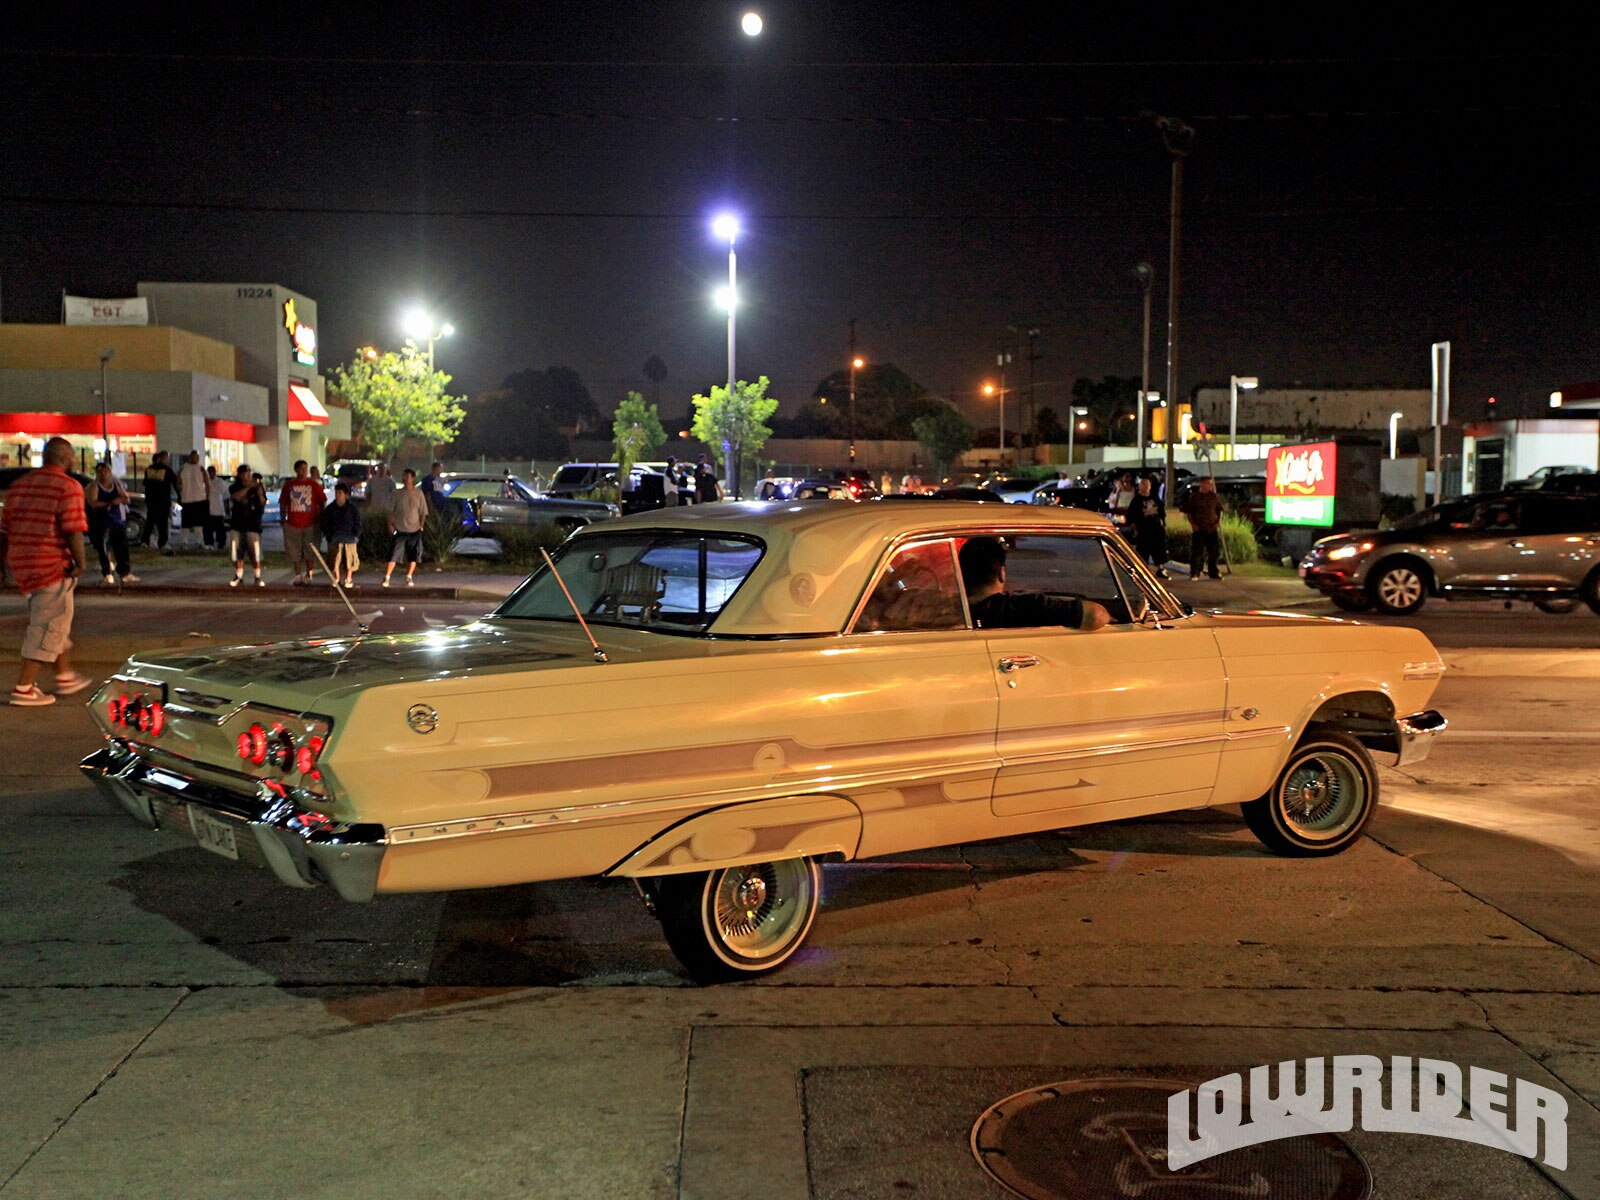 Lrmp O Lowrider Street Cred South Central La Lowrider Rear Right View on 1985 Buick Regal